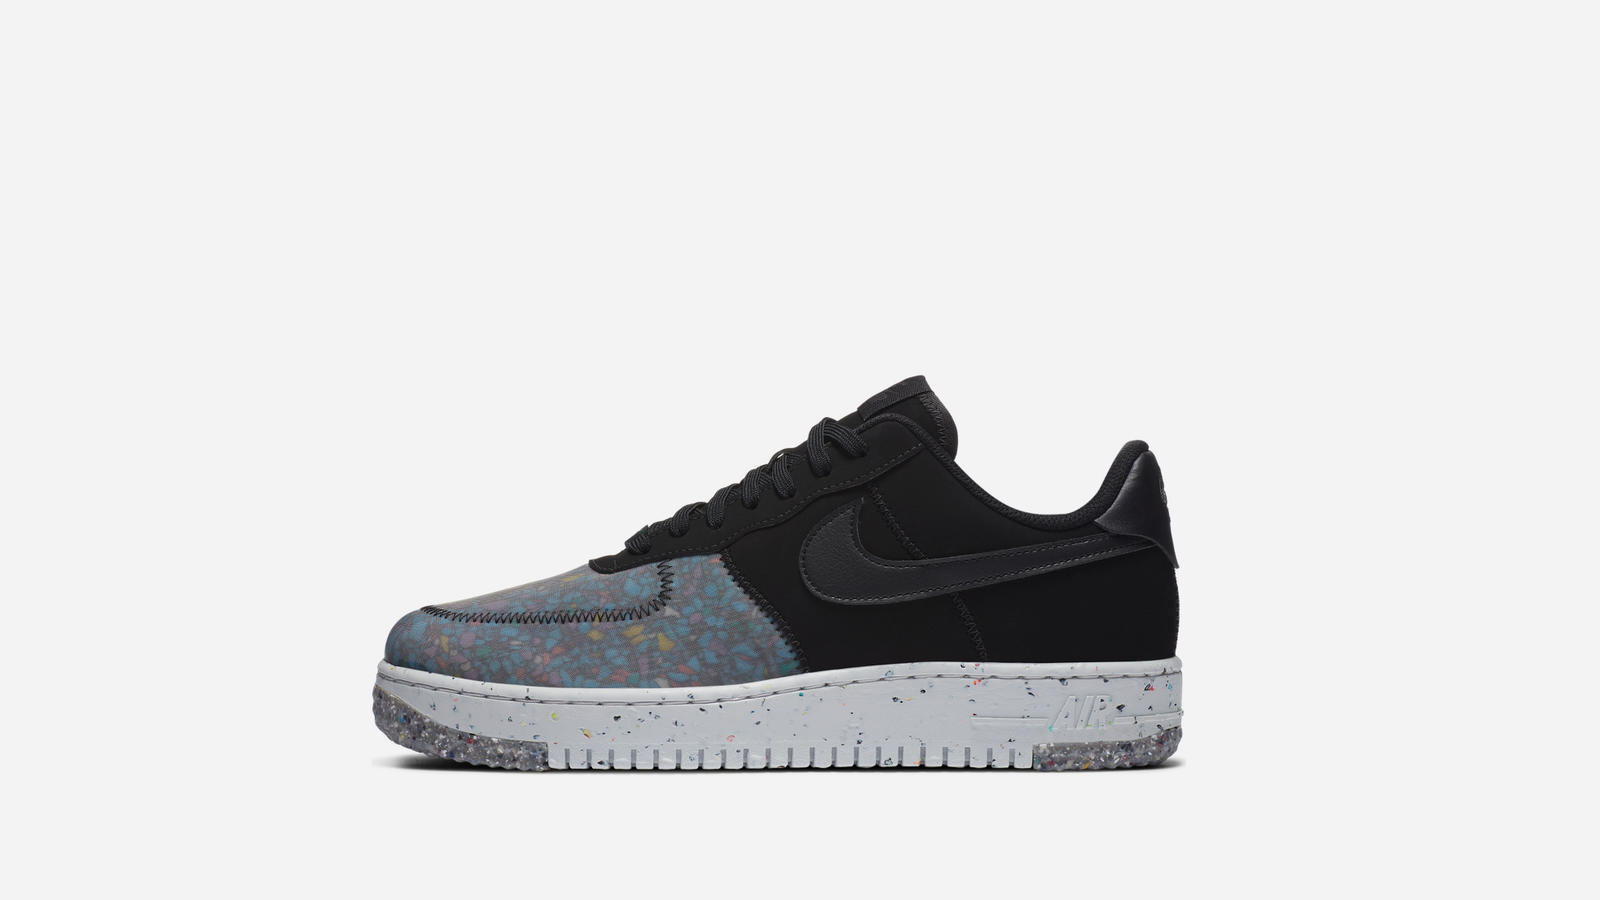 Nike Air Force 1 Crater Official Images and Release Date - Nike News